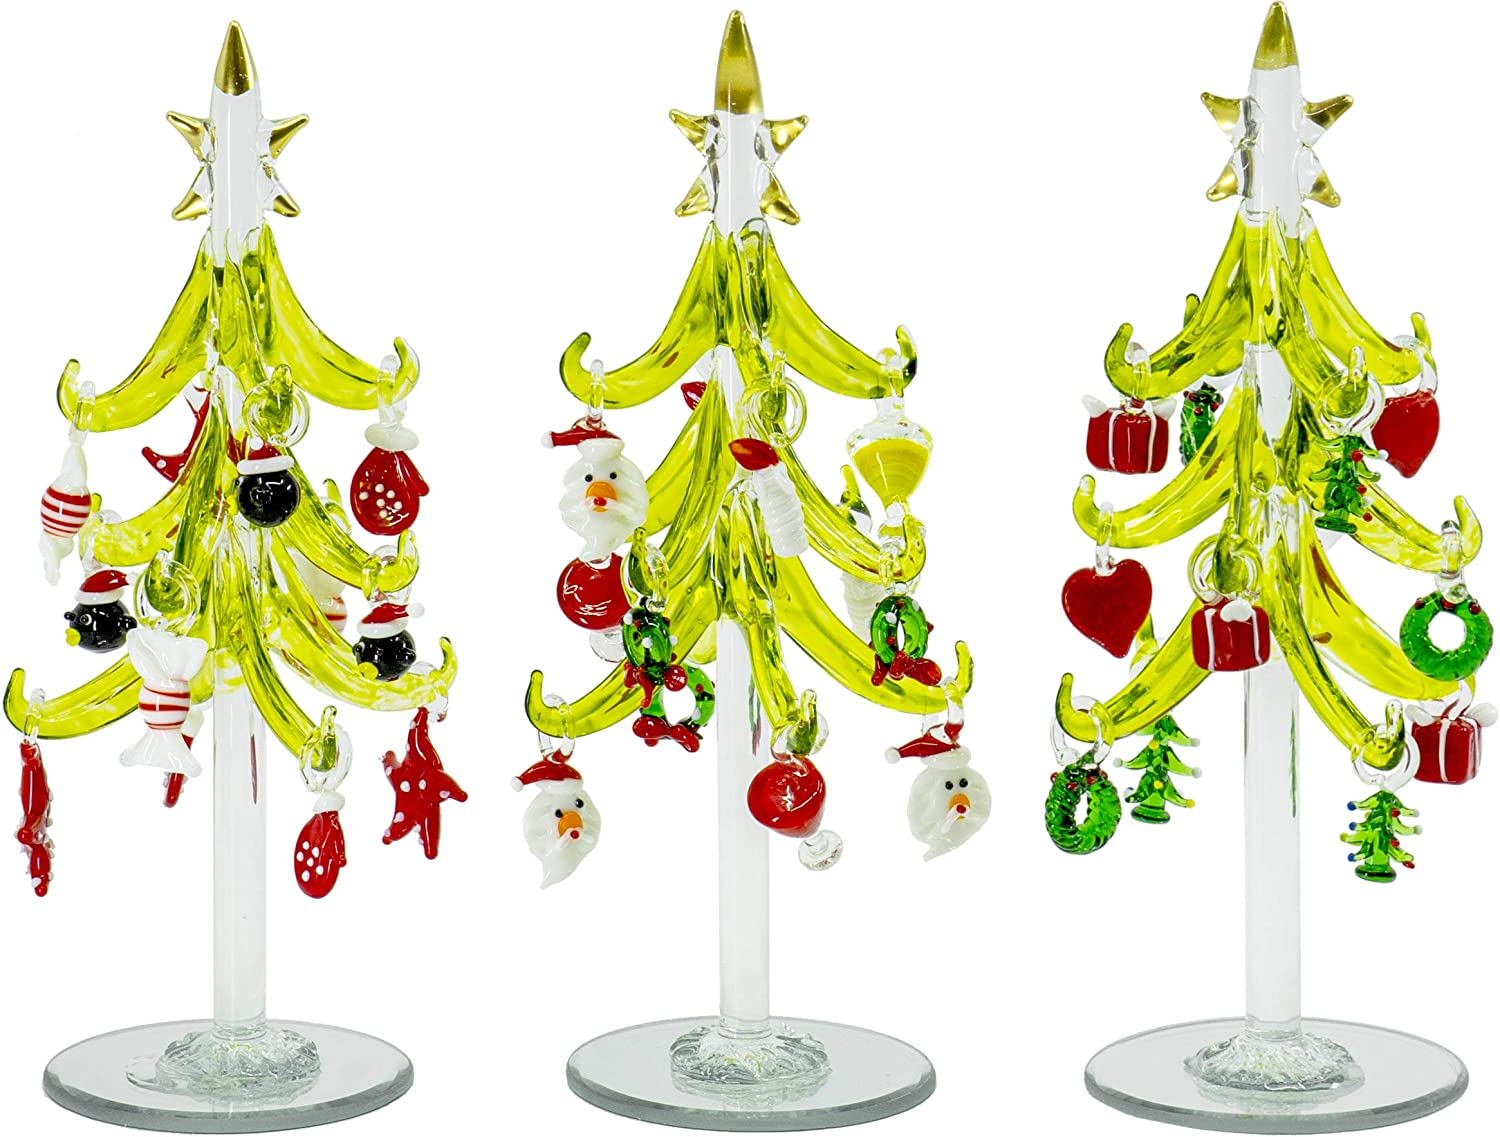 Red Co. Glass Christmas Tree Tabletop Display Decoration with Assorted Glass Ornaments, Holiday Season Decor, 8 Inches, Set of 3